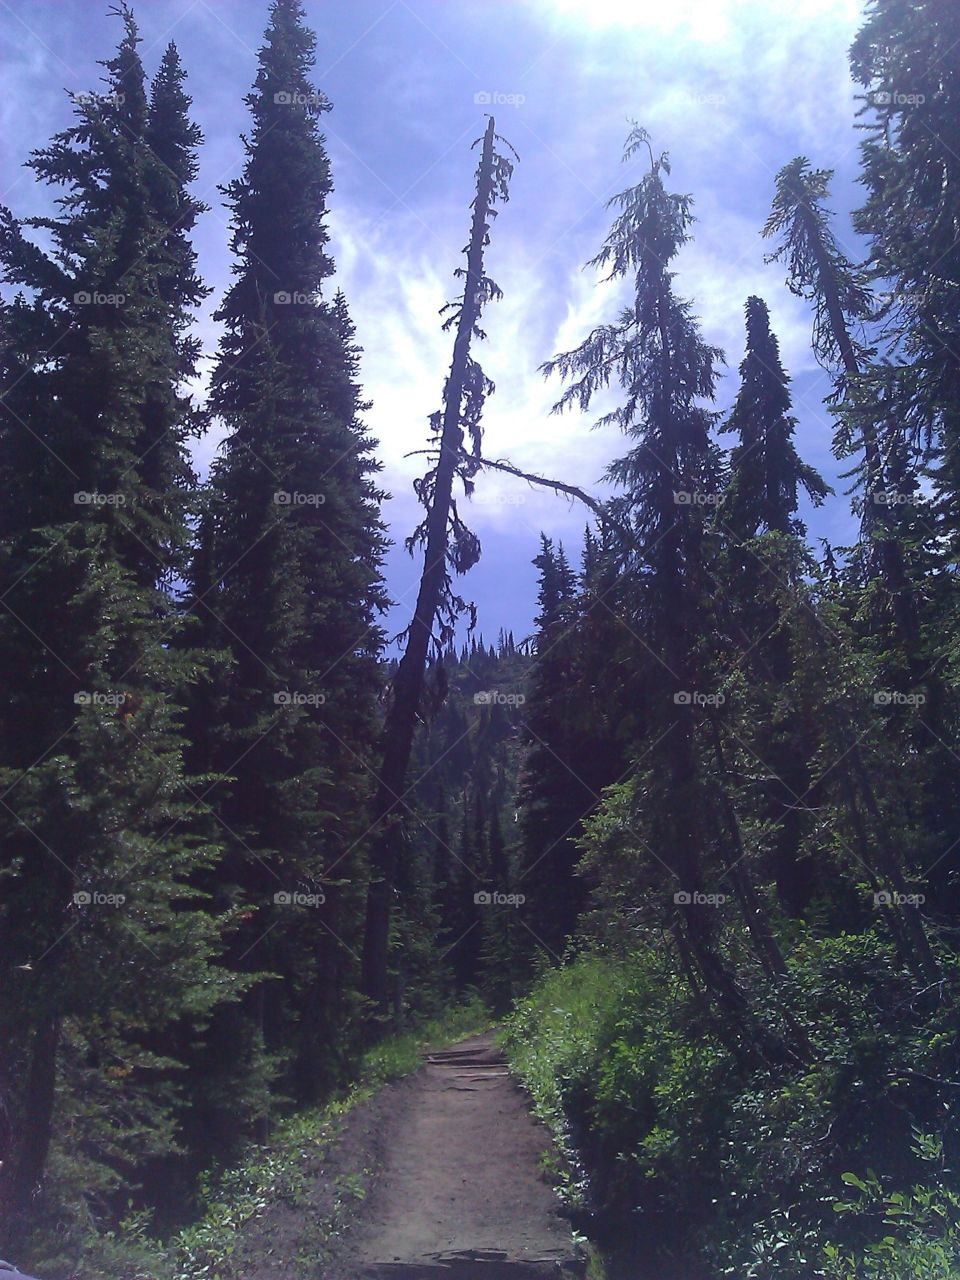 Trees Overlooking A Path. Hiking in the Mt. Rainier National Forest I came across several trees overlooking the trail I was on.